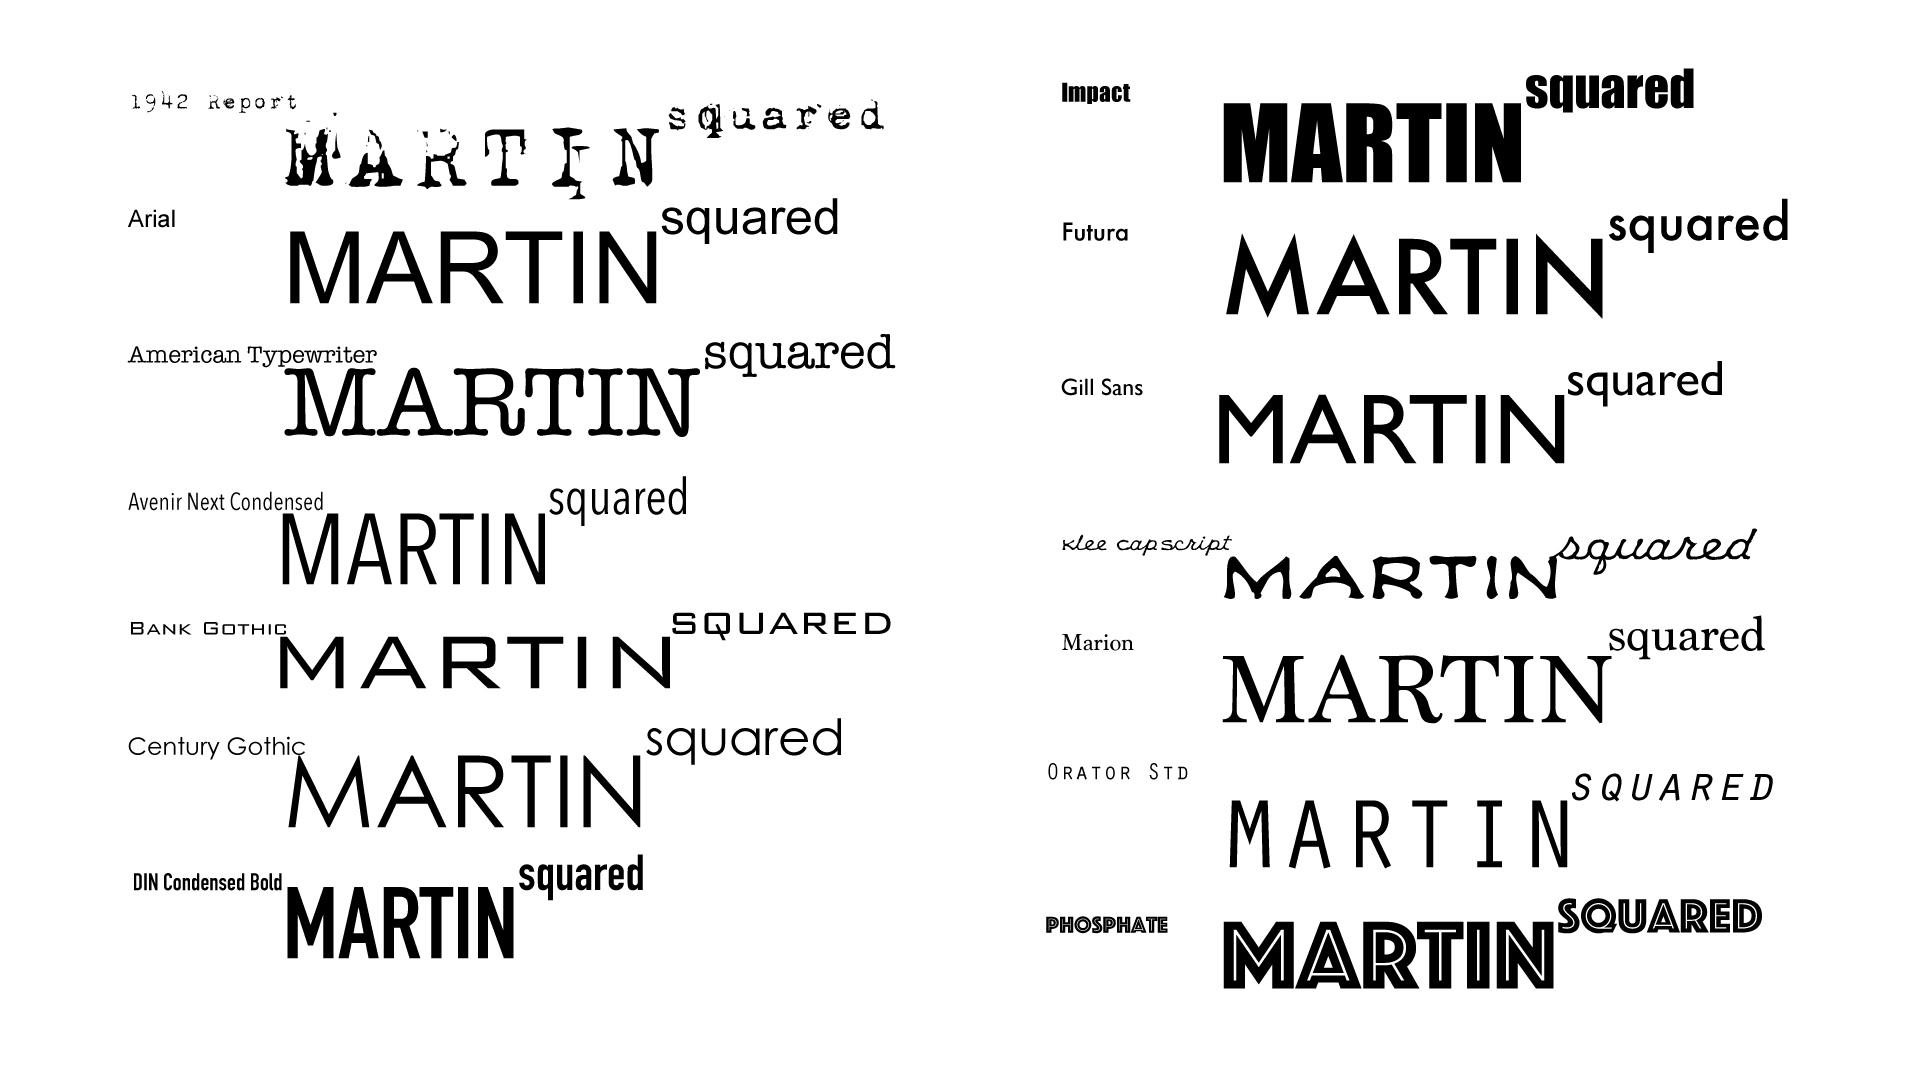 MARTINsquared Logo Font Options